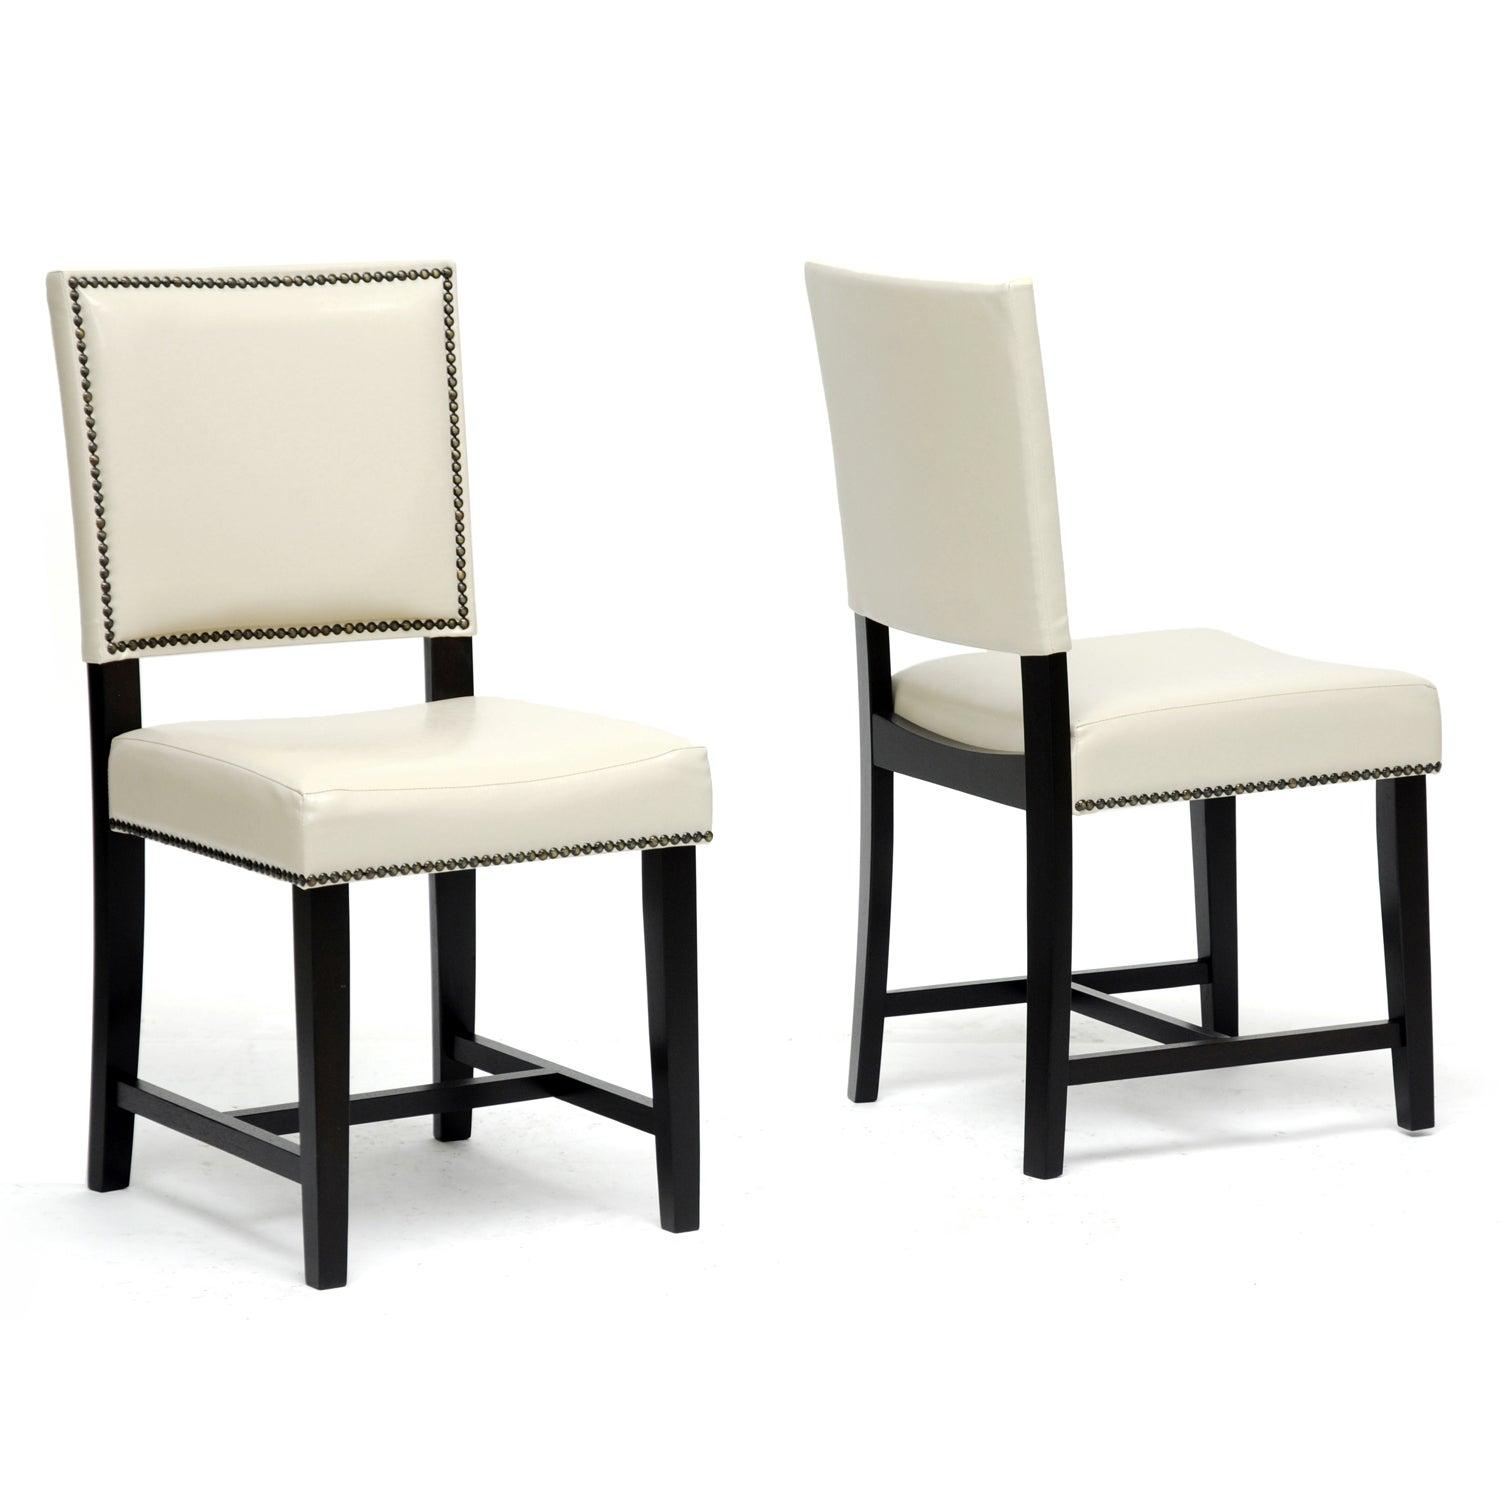 studio nottingham cream faux leather modern dining chairs set of 2